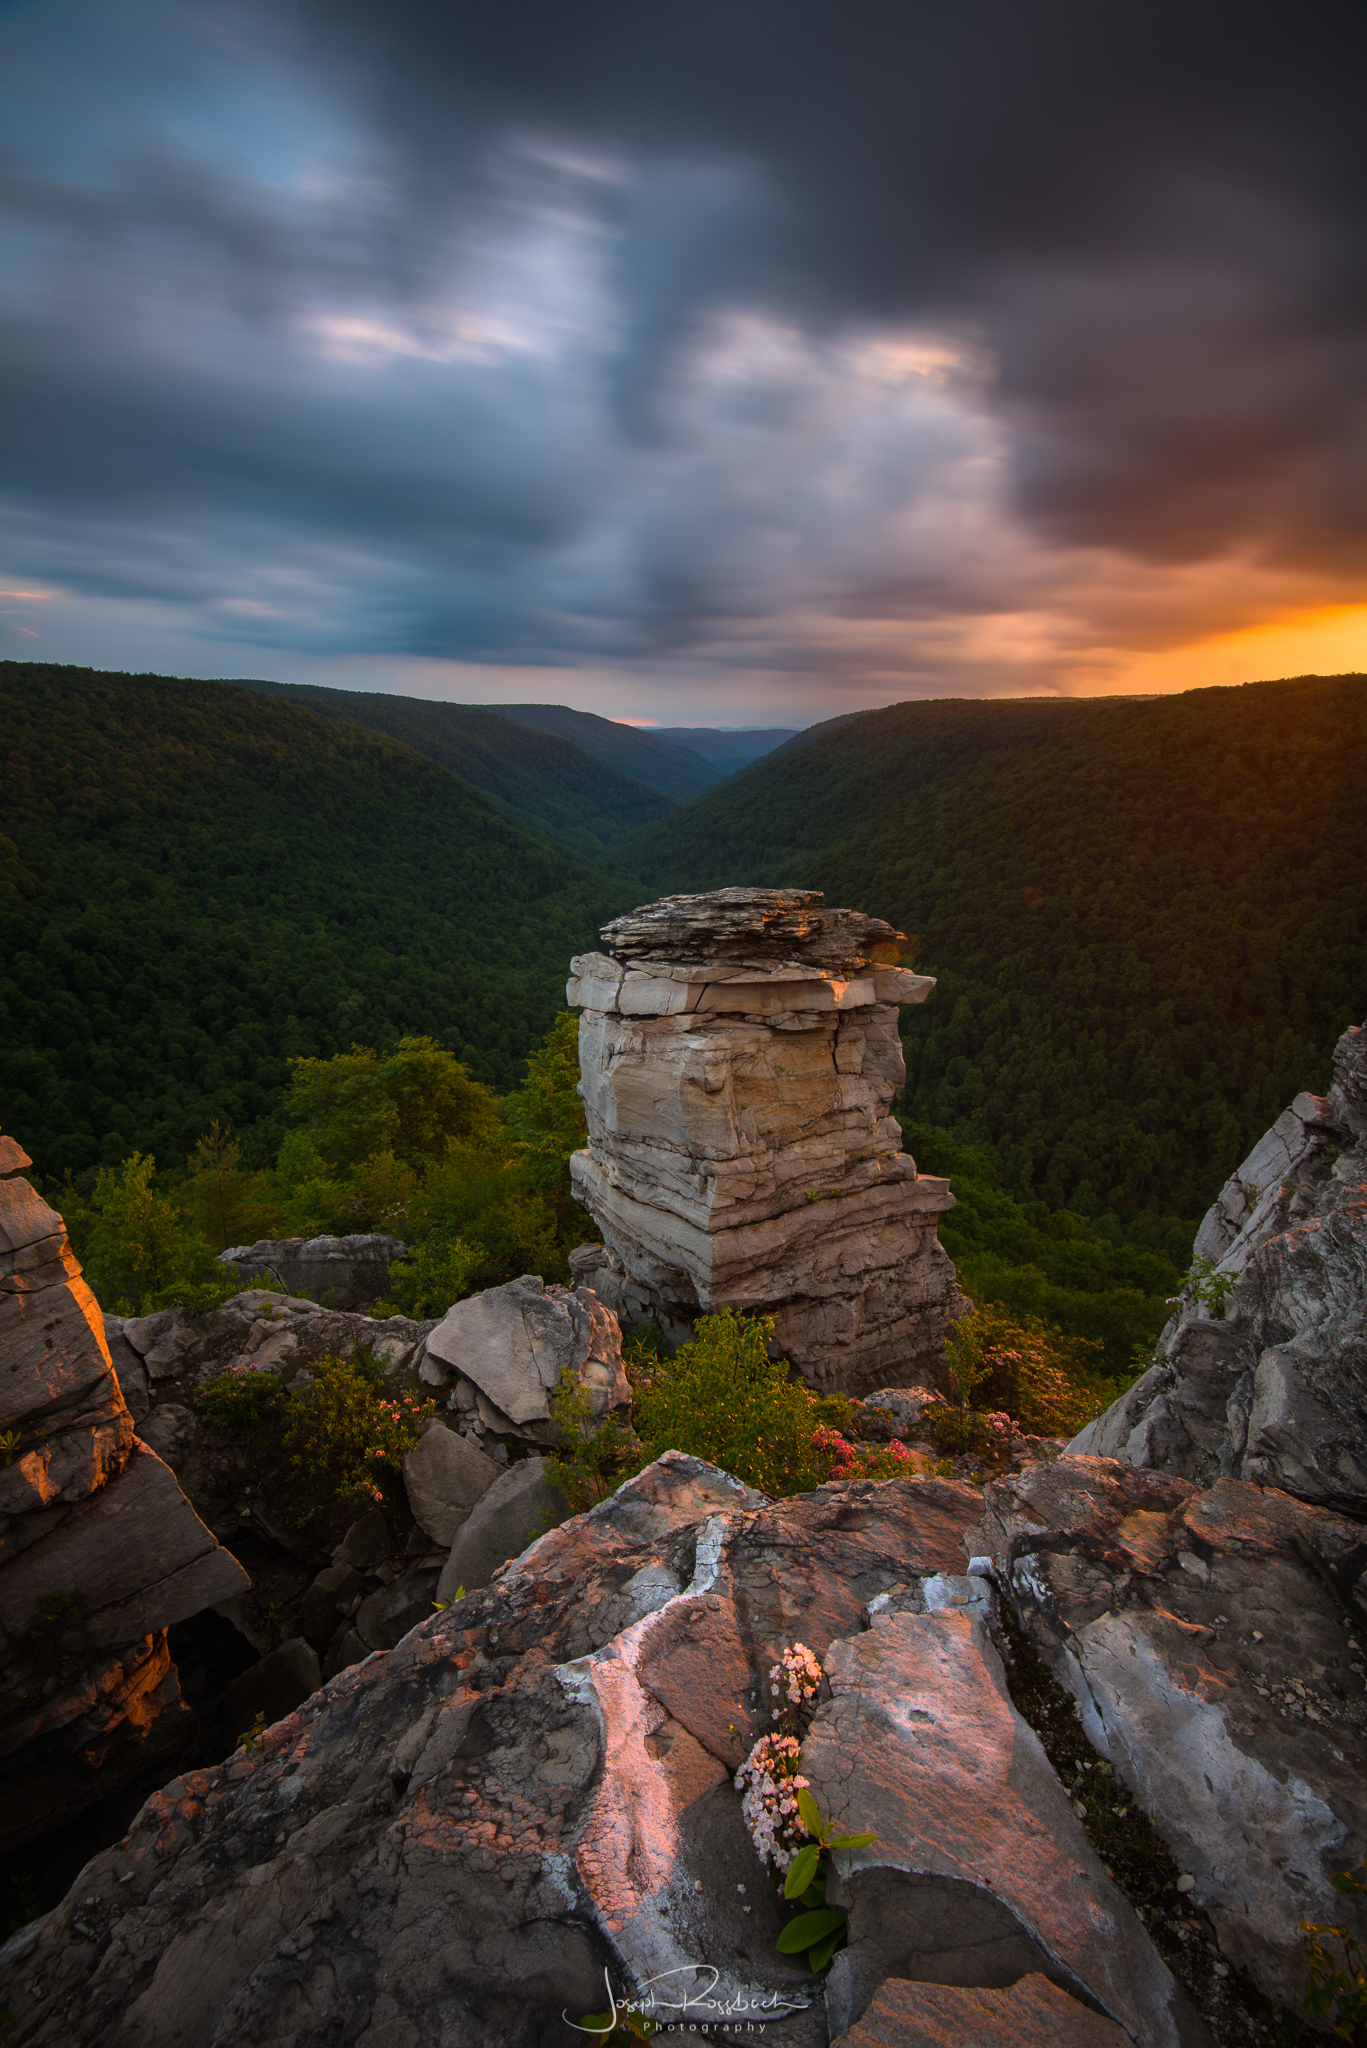 Stormy Sunset from Lindy Point, Blackwater Canyon, West Virginia